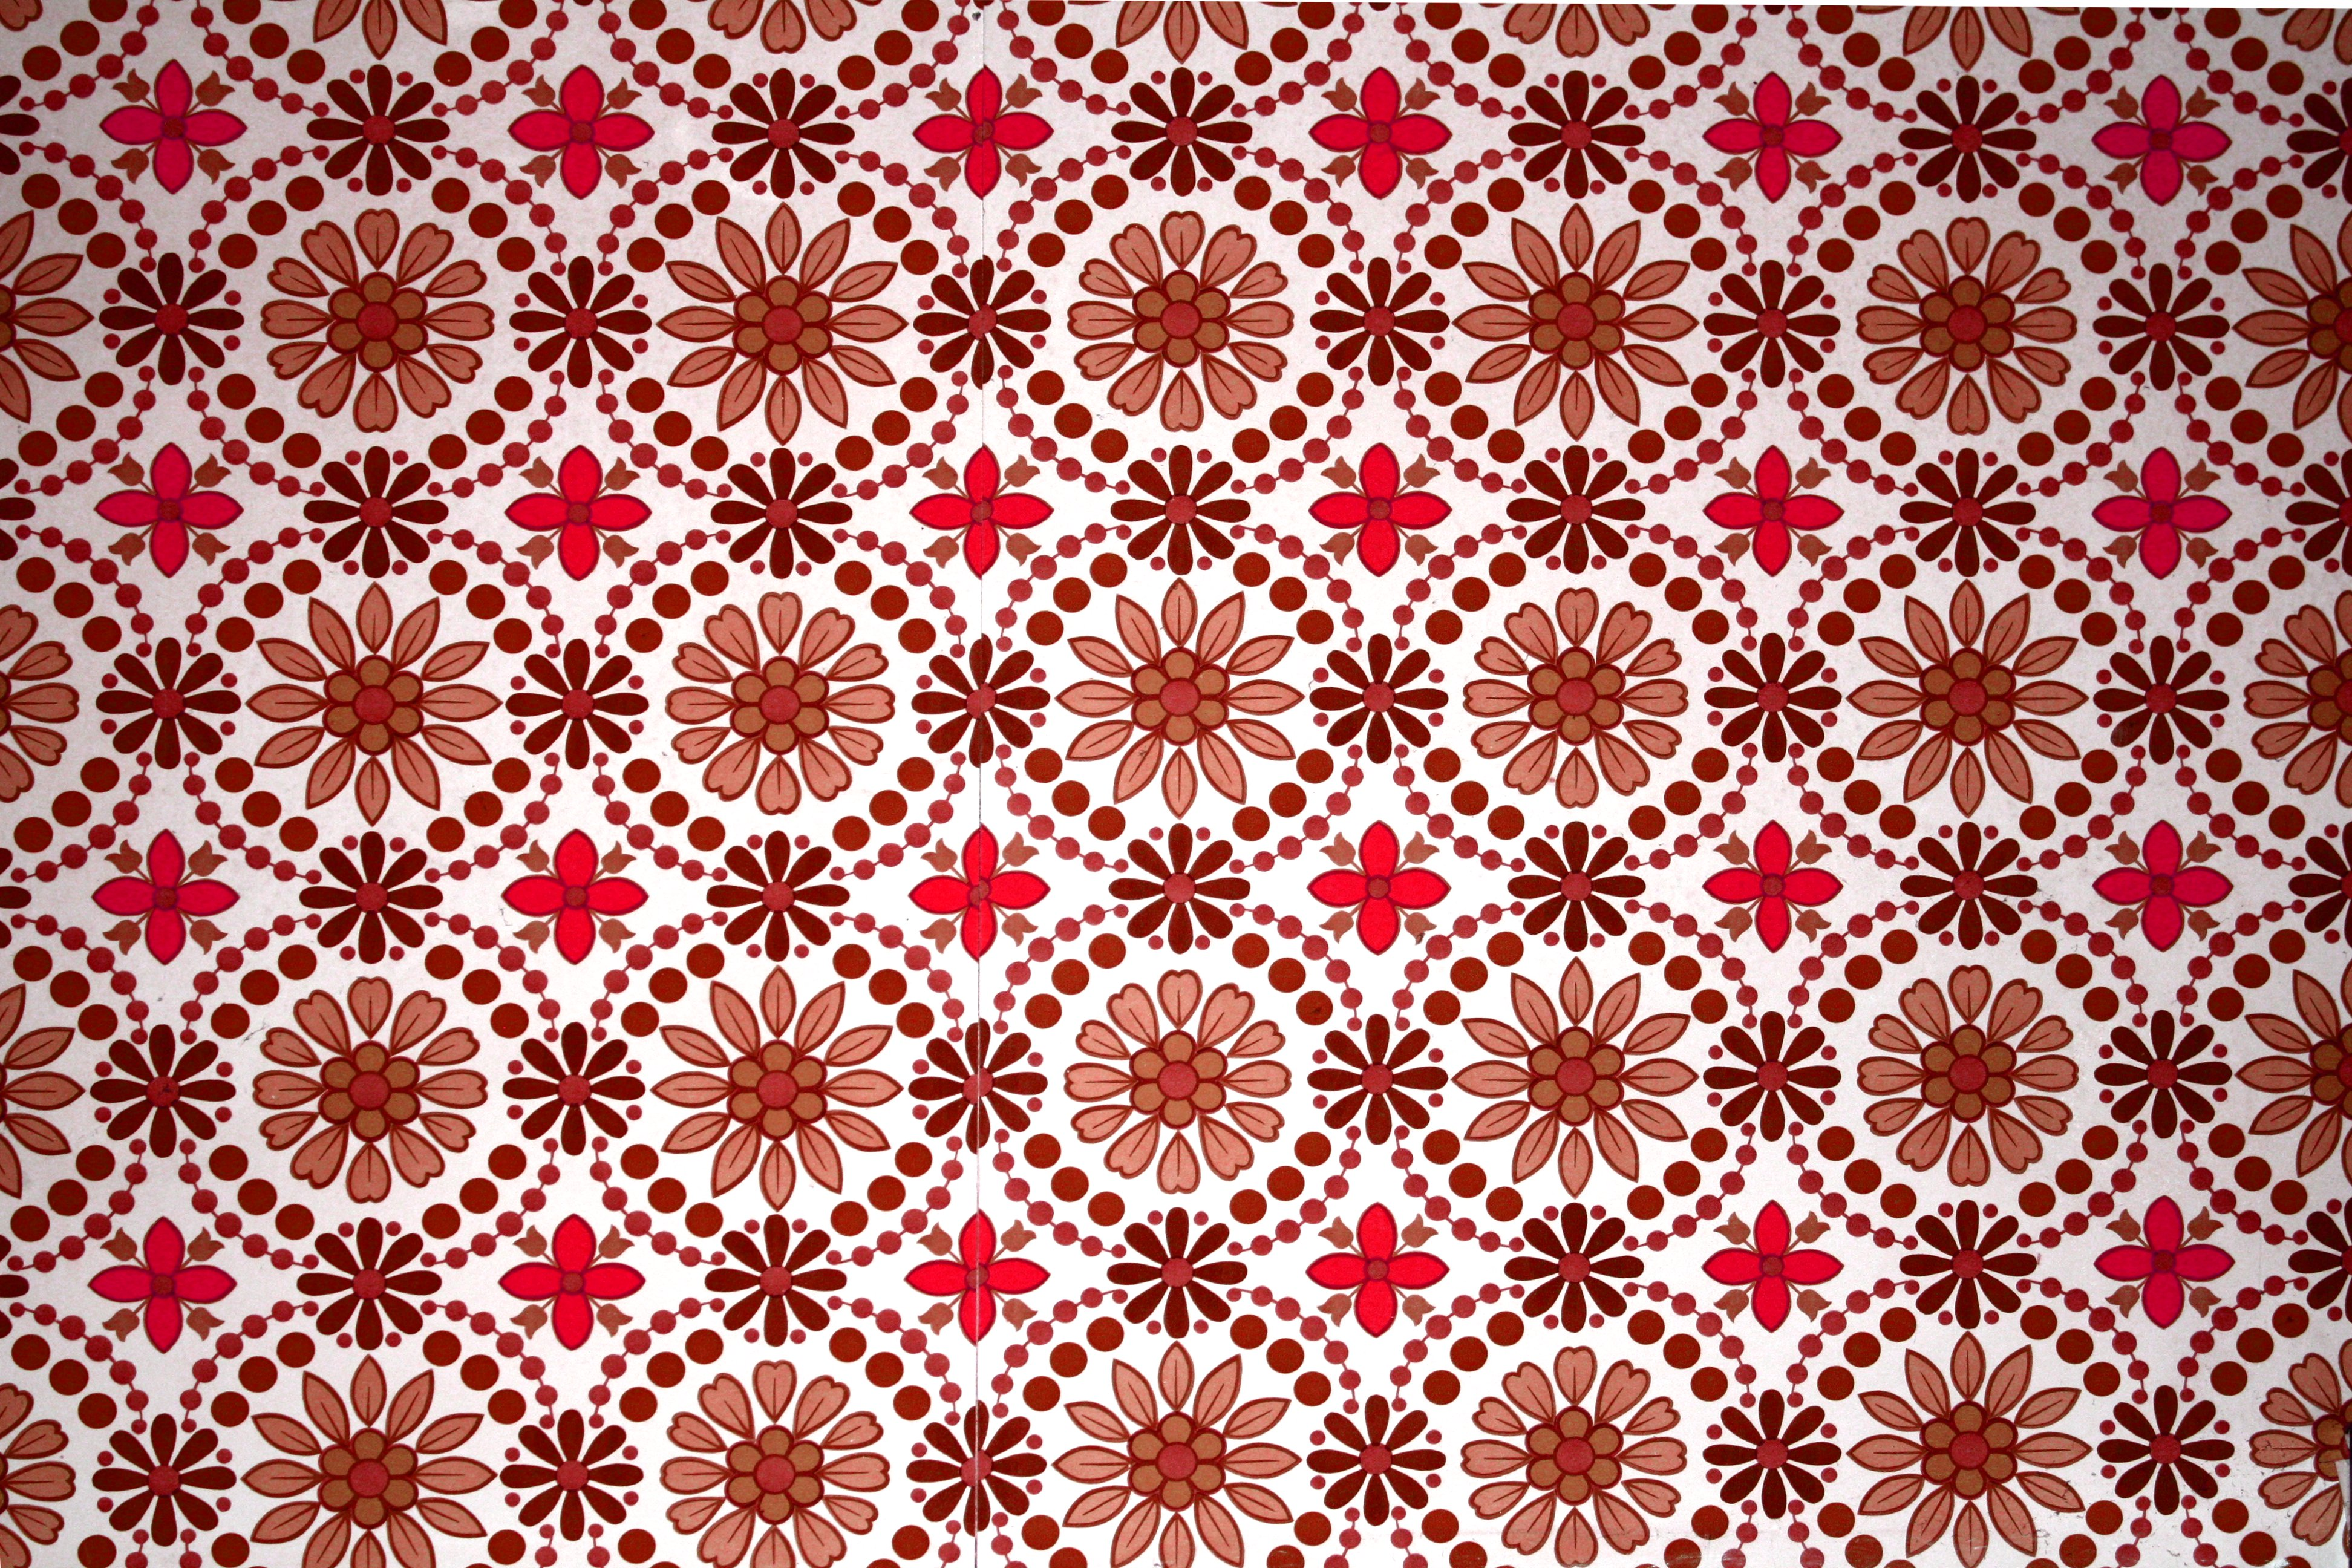 Red Floral Wallpaper Designs Floral Seamless Pattern White Red Roses